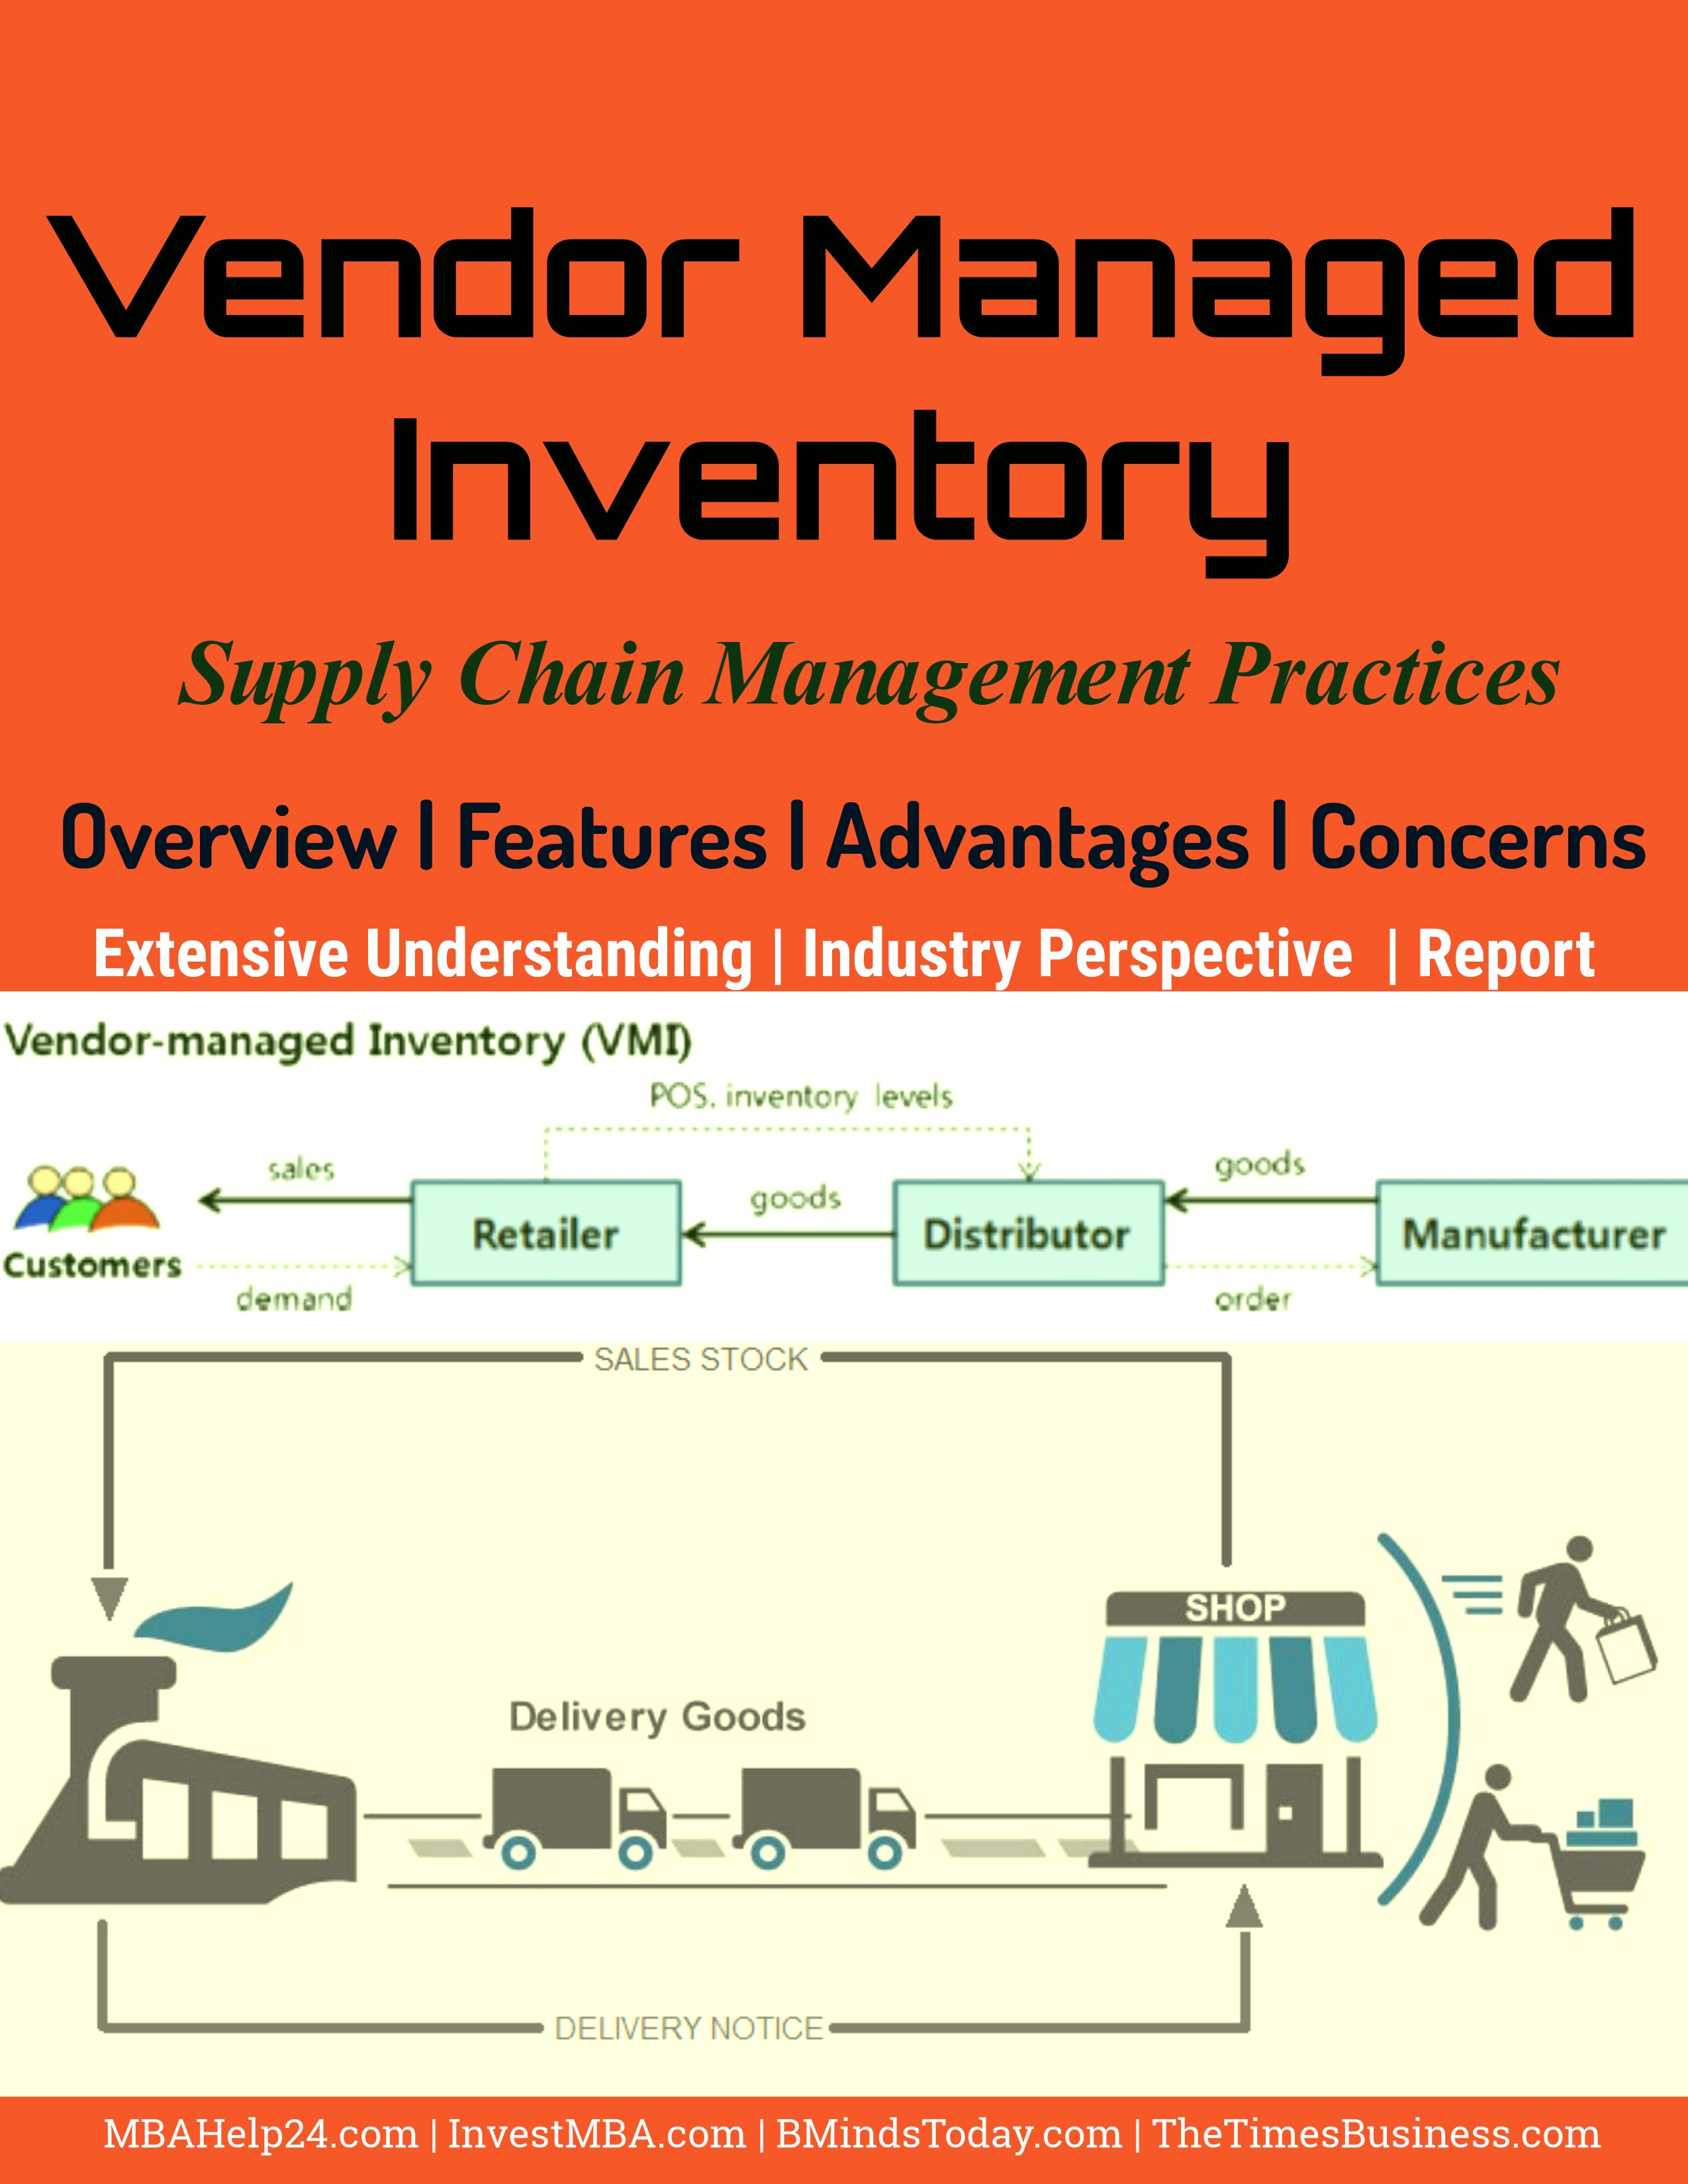 Vendor Managed Inventory- Overview, Features, Advantages and Concerns Vendor Managed Inventory Vendor Managed Inventory | Overview | Features | Advantages | Concerns Vendor Managed Inventory Overview Features Advantages and Concerns vendor managed inventory | overview | features | advantages Vendor Managed Inventory | Overview | Features | Advantages Vendor Managed Inventory Overview Features Advantages and Concerns